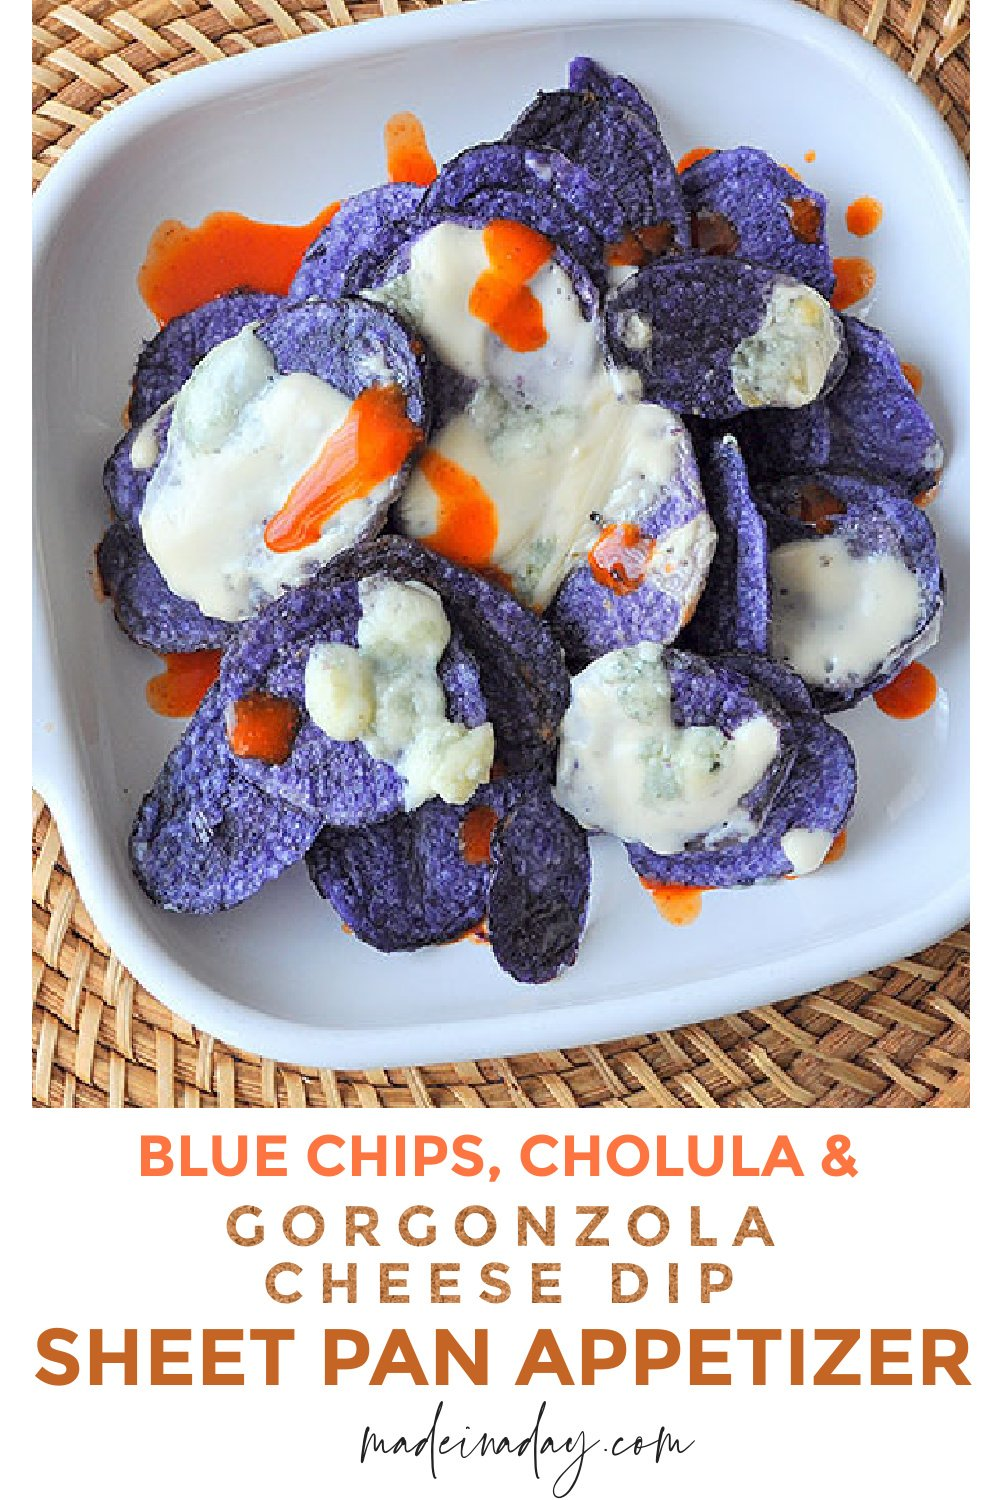 Blue Chips with Gorgonzola Cheese Dip